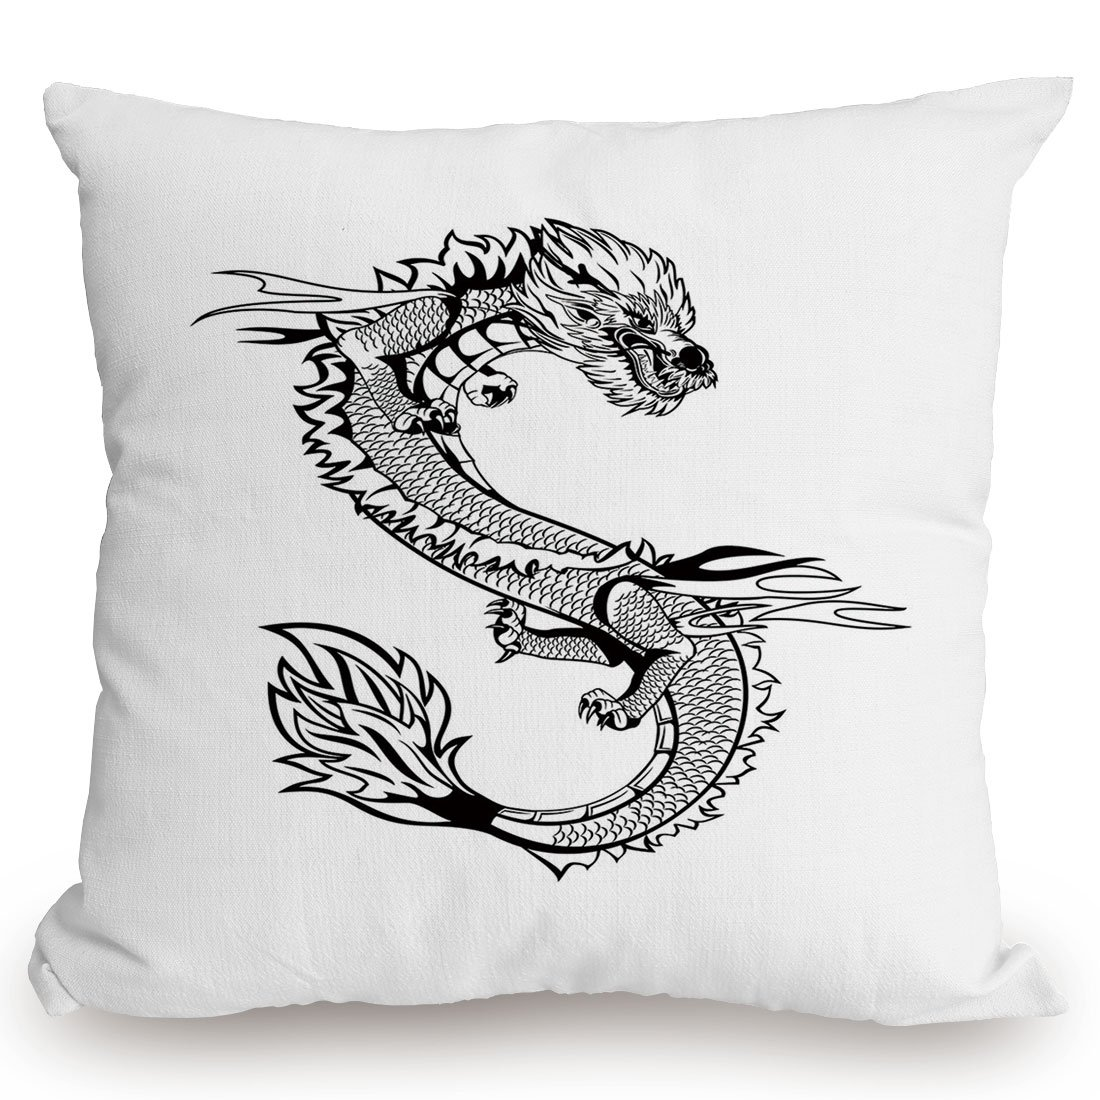 Throw Pillow Cushion Cover,Japanese Dragon,Ancient Far Eastern Culture Esoteric Magical Monster Symbolic Thai Style Decorative,Black White,Decorative Square Accent Pillow Case